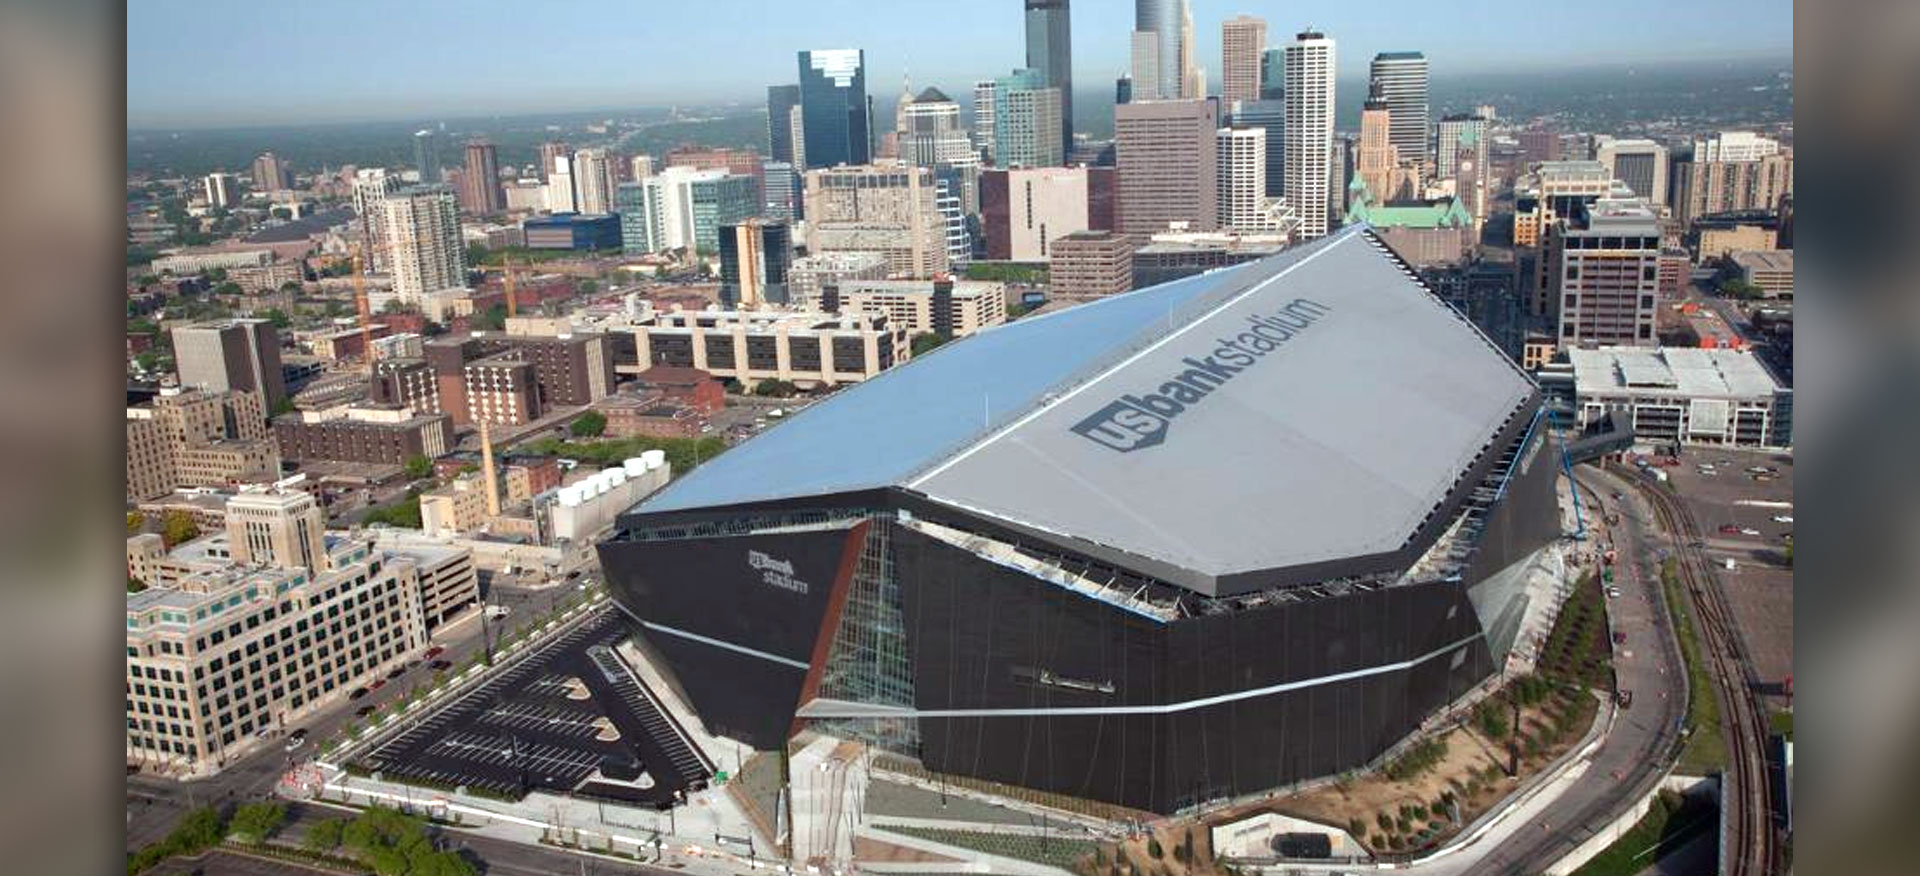 Exterior: Craft Beers To Be Sold At New Vikings Stadium